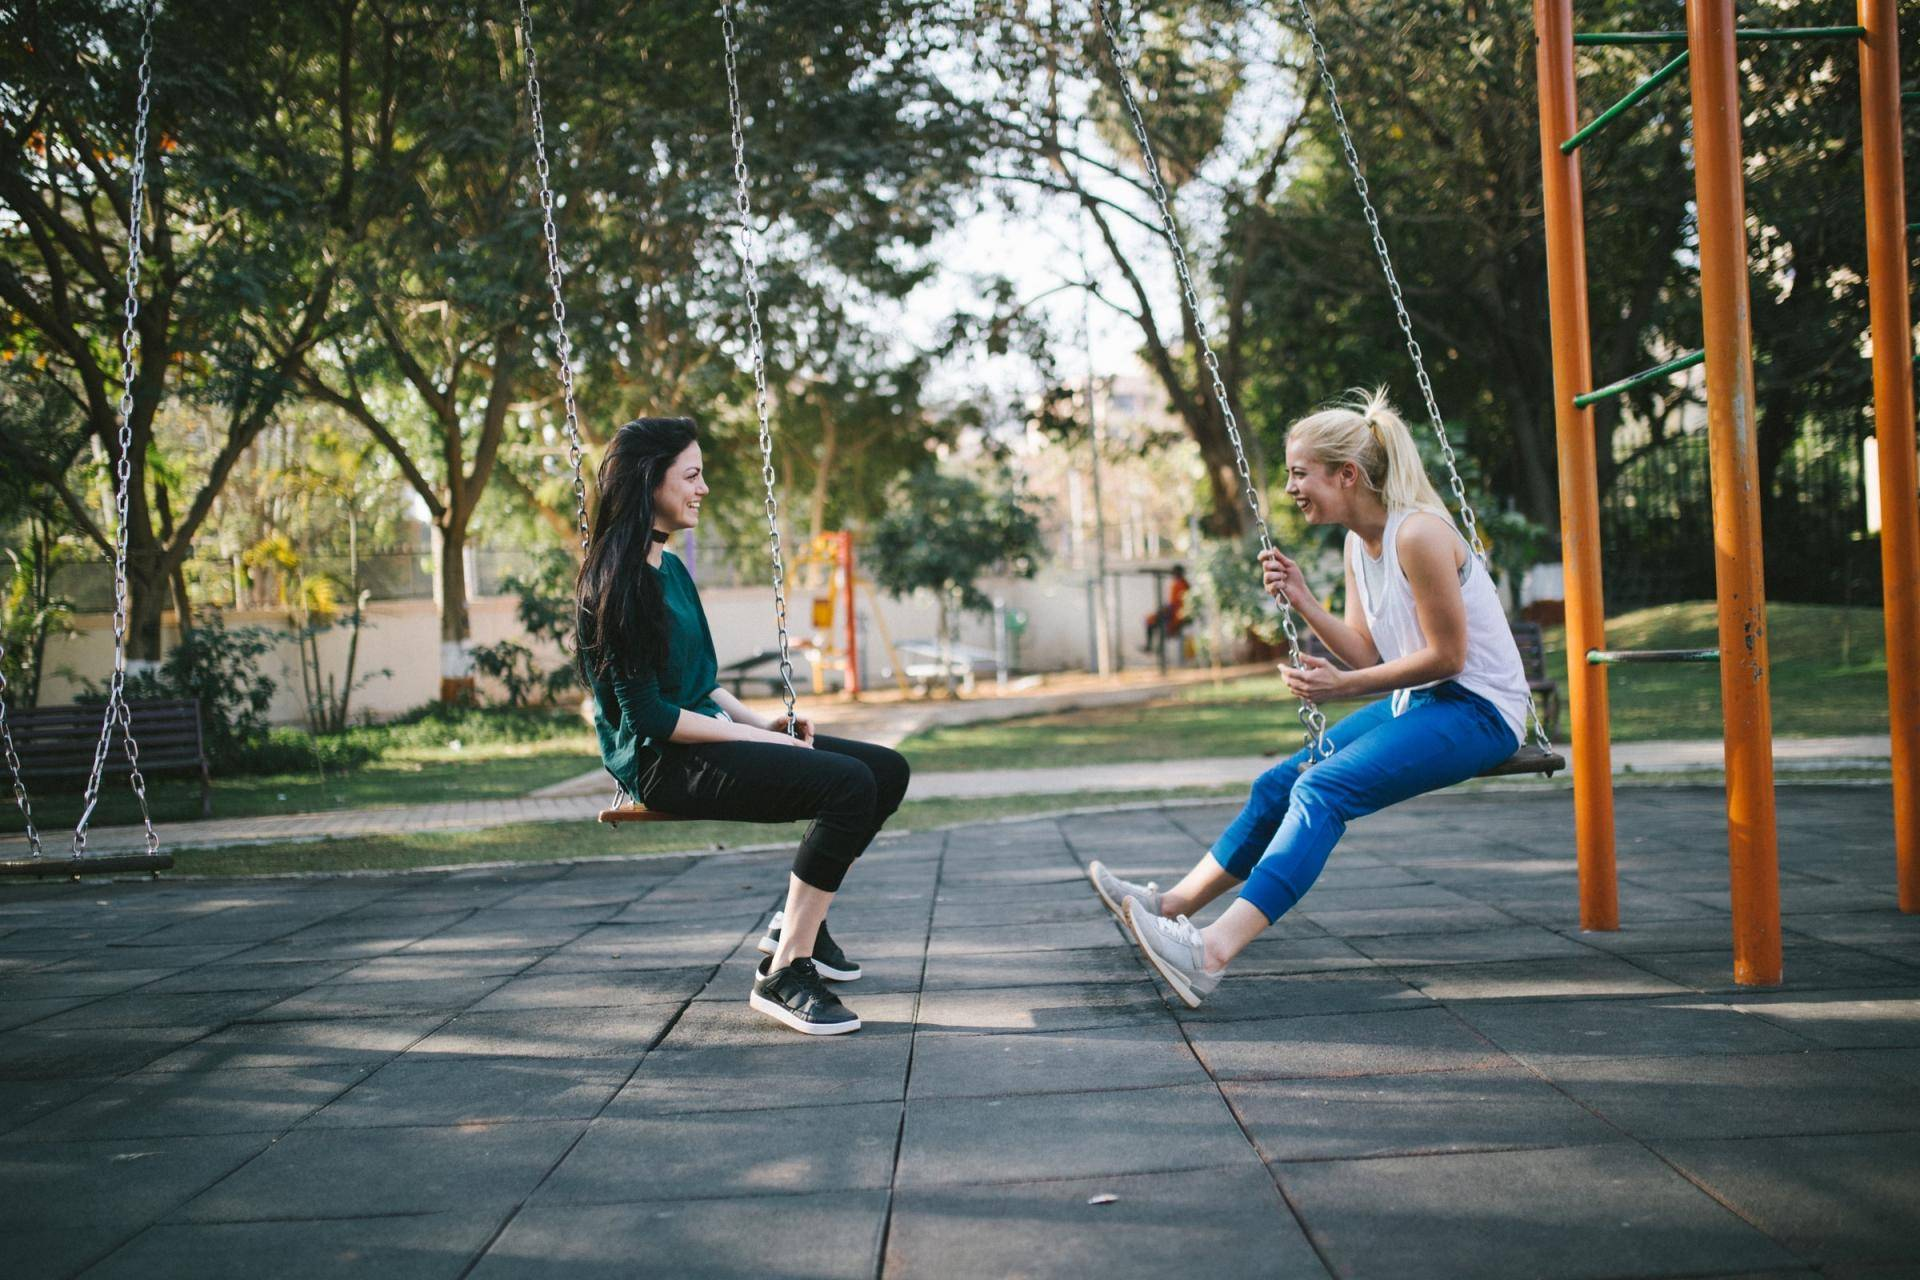 image by Bewakoof, two girls on swings